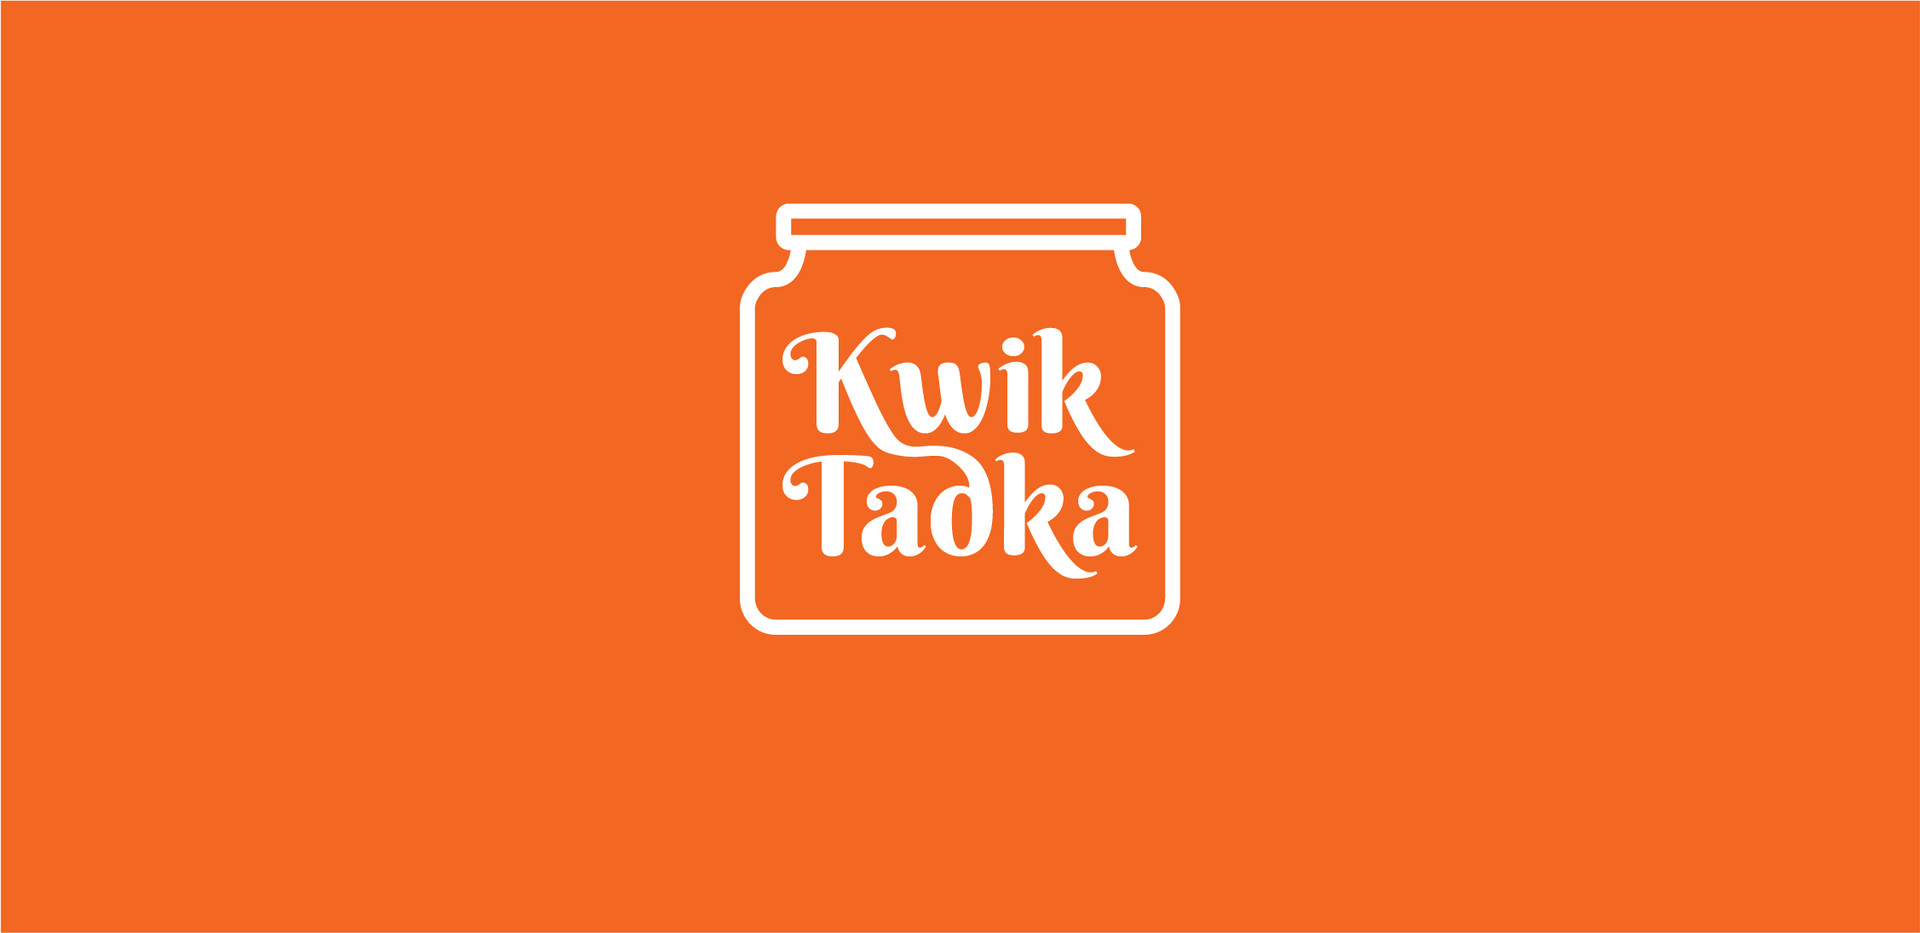 Kwik Tadka  Logo with BG.jpg